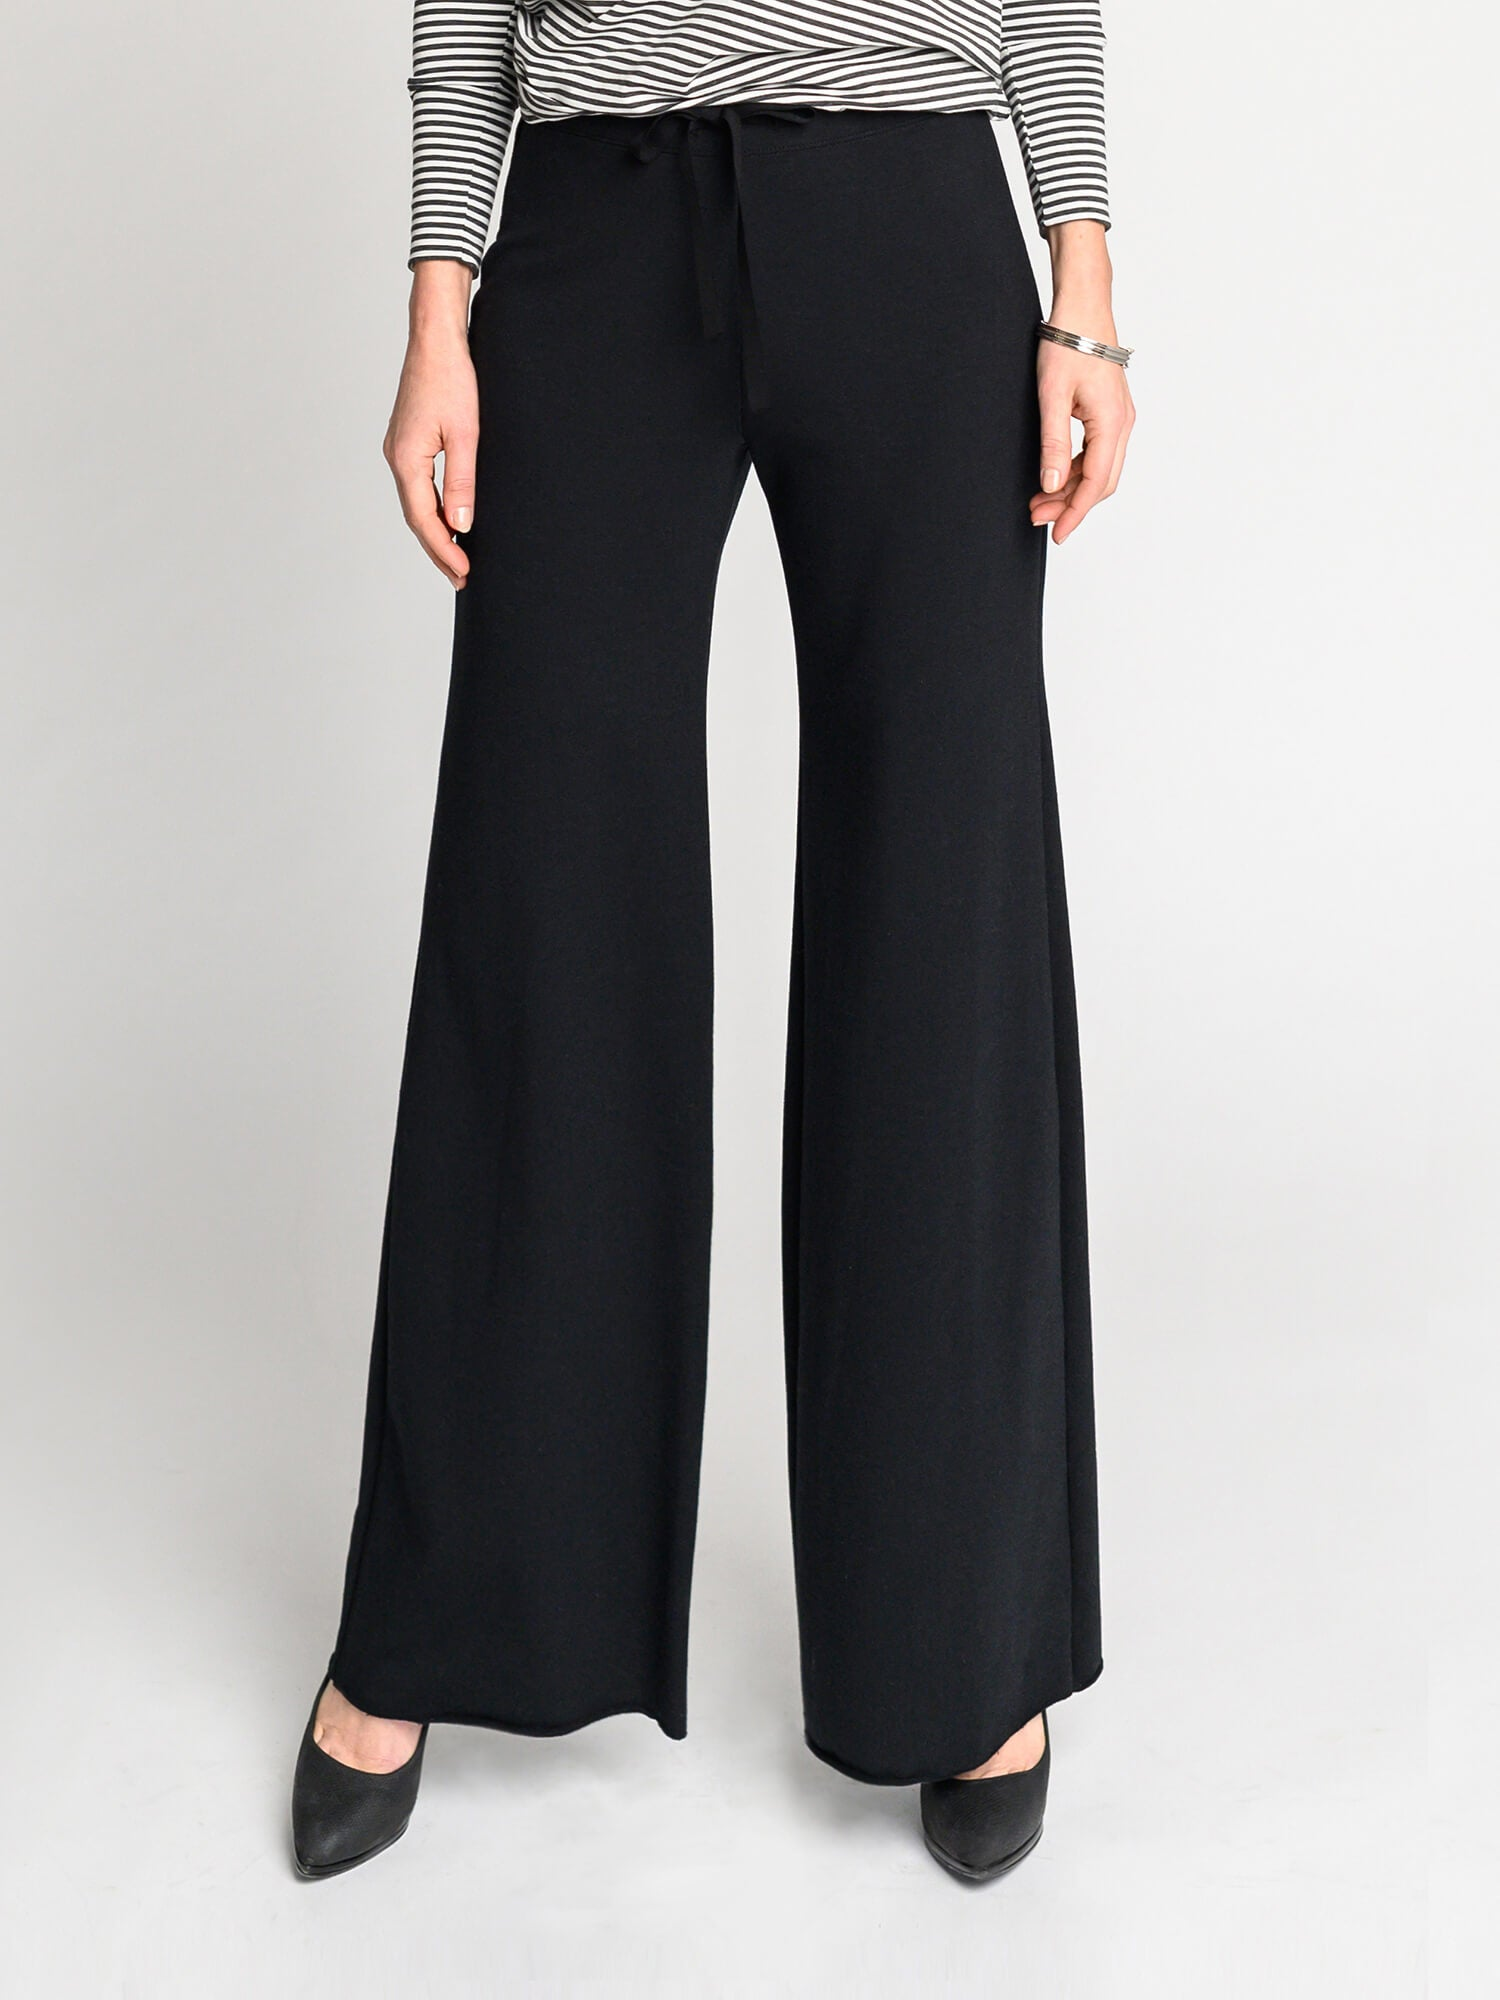 Black wide-leg pant with 2 inch elastic waistband and raw bottom hem.